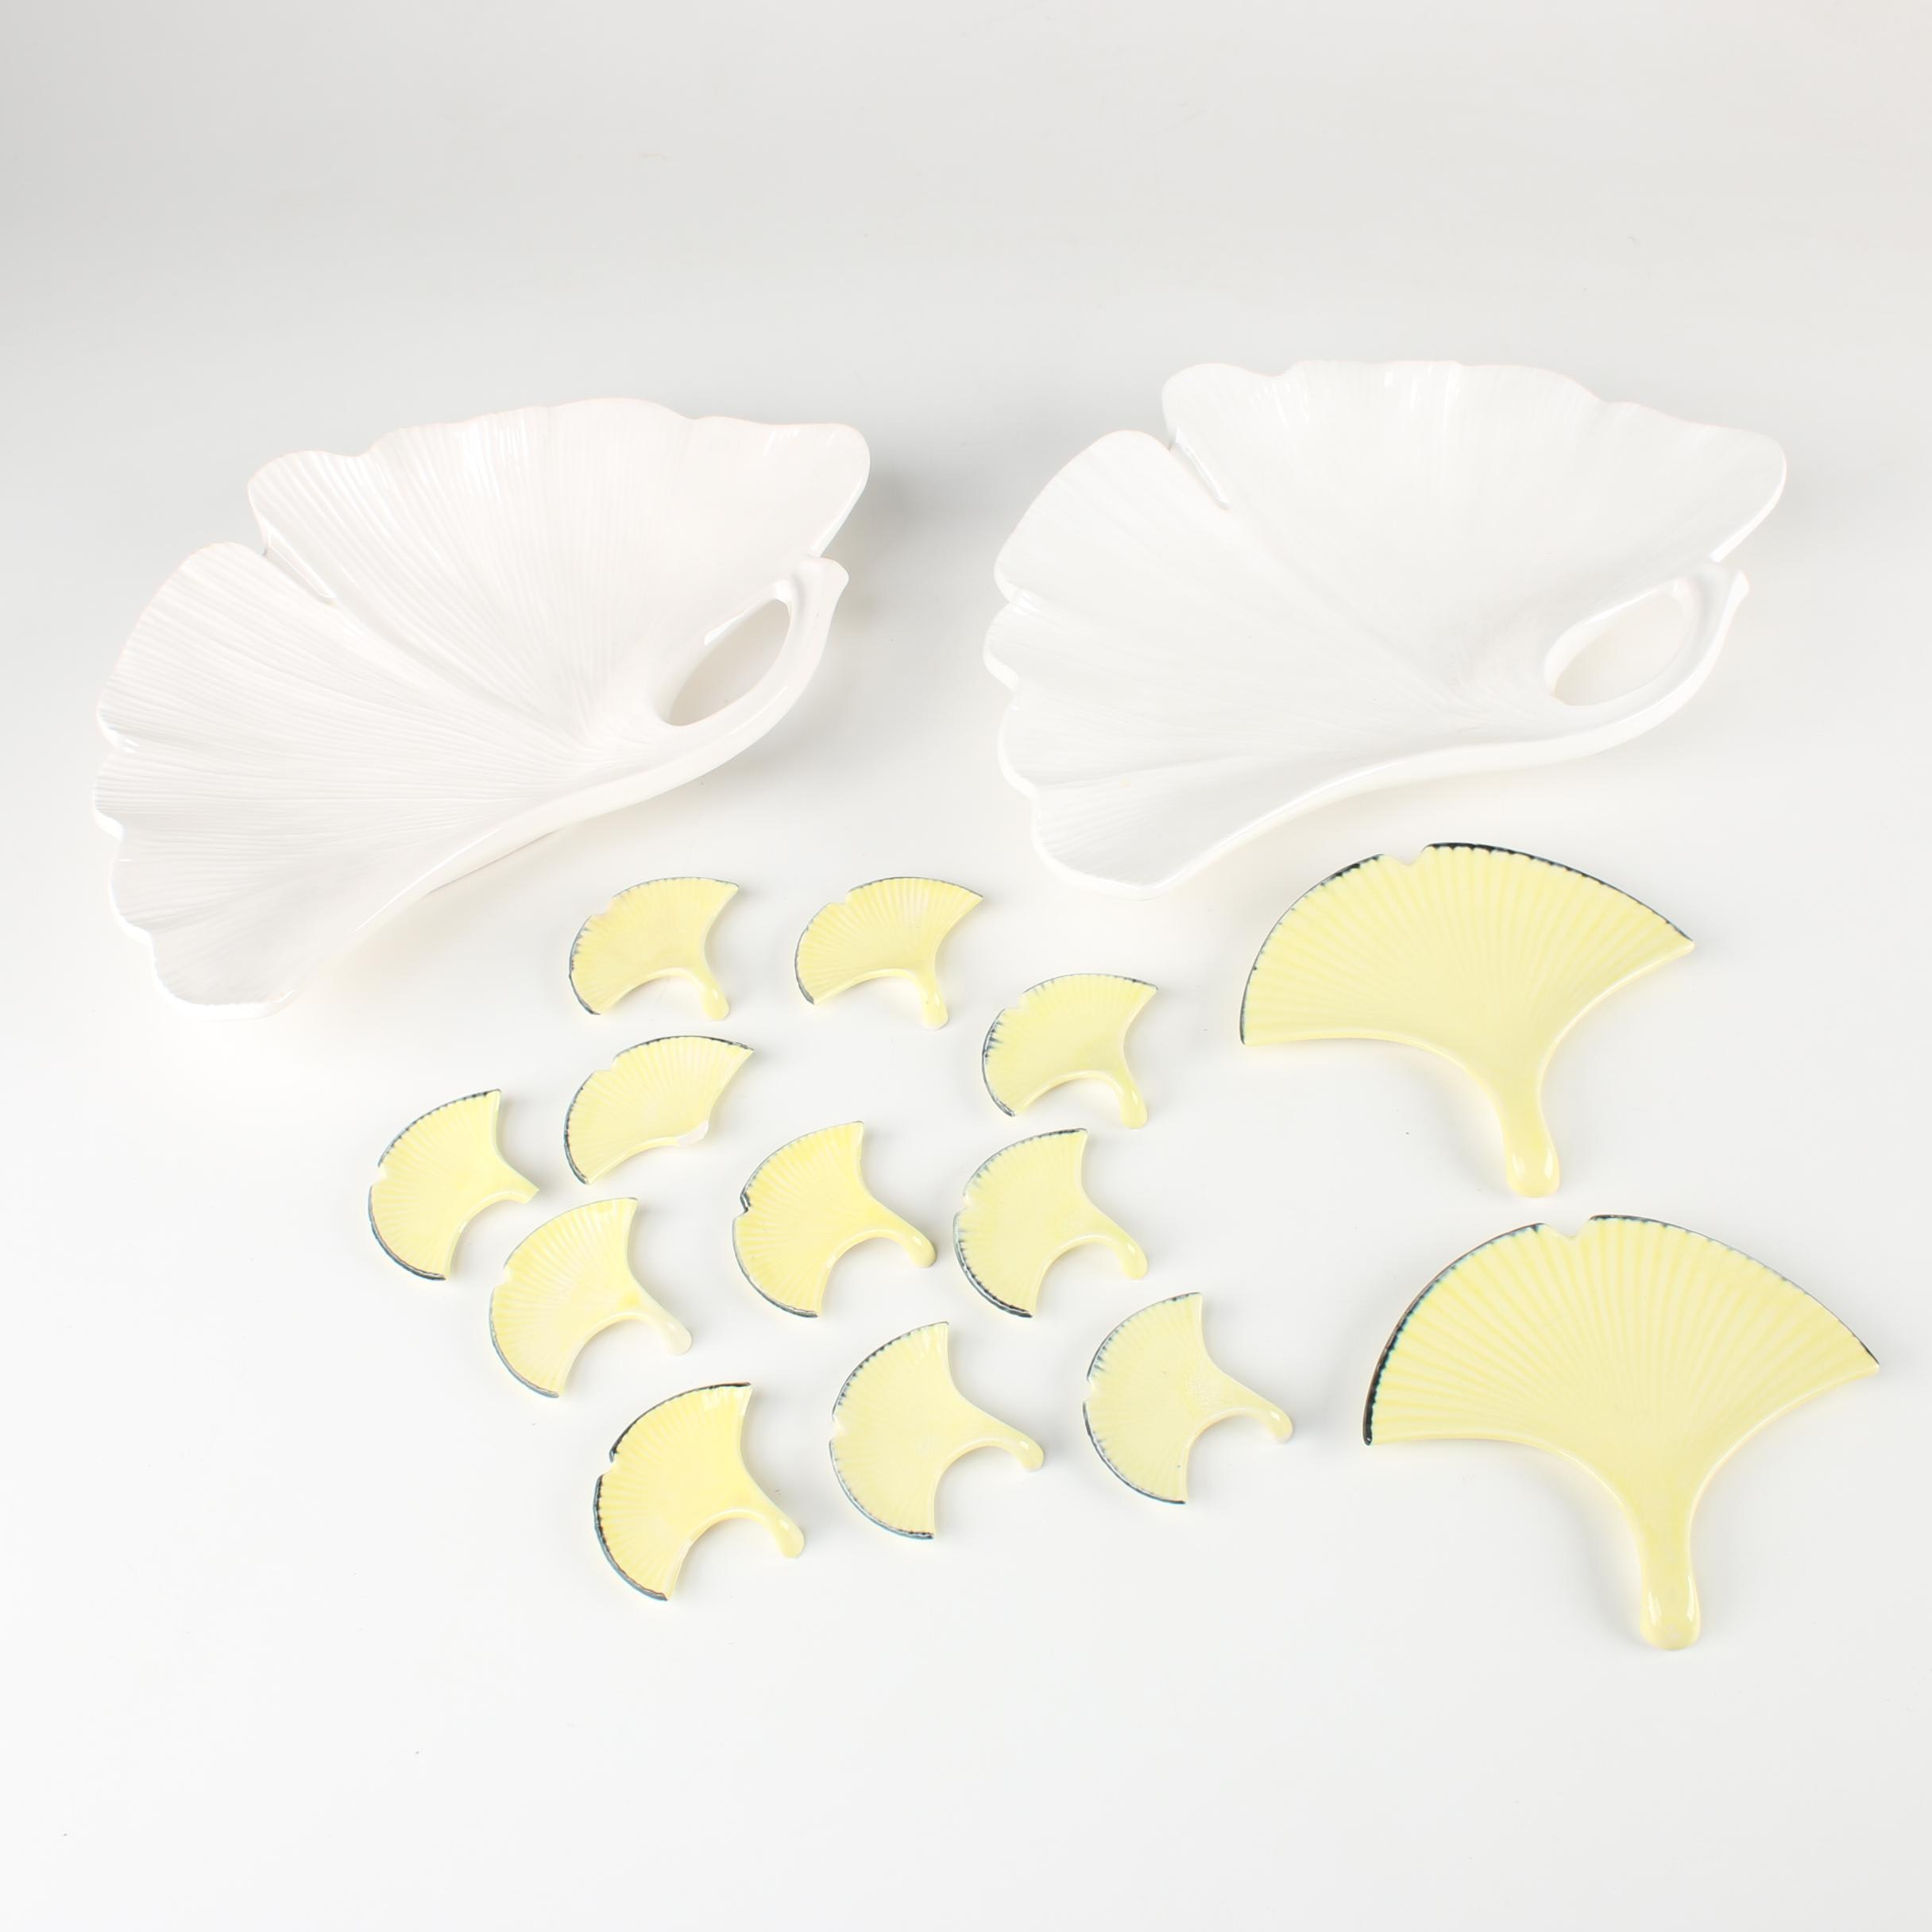 Mikasa and Pier1 Ginkgo Leaf Dishes